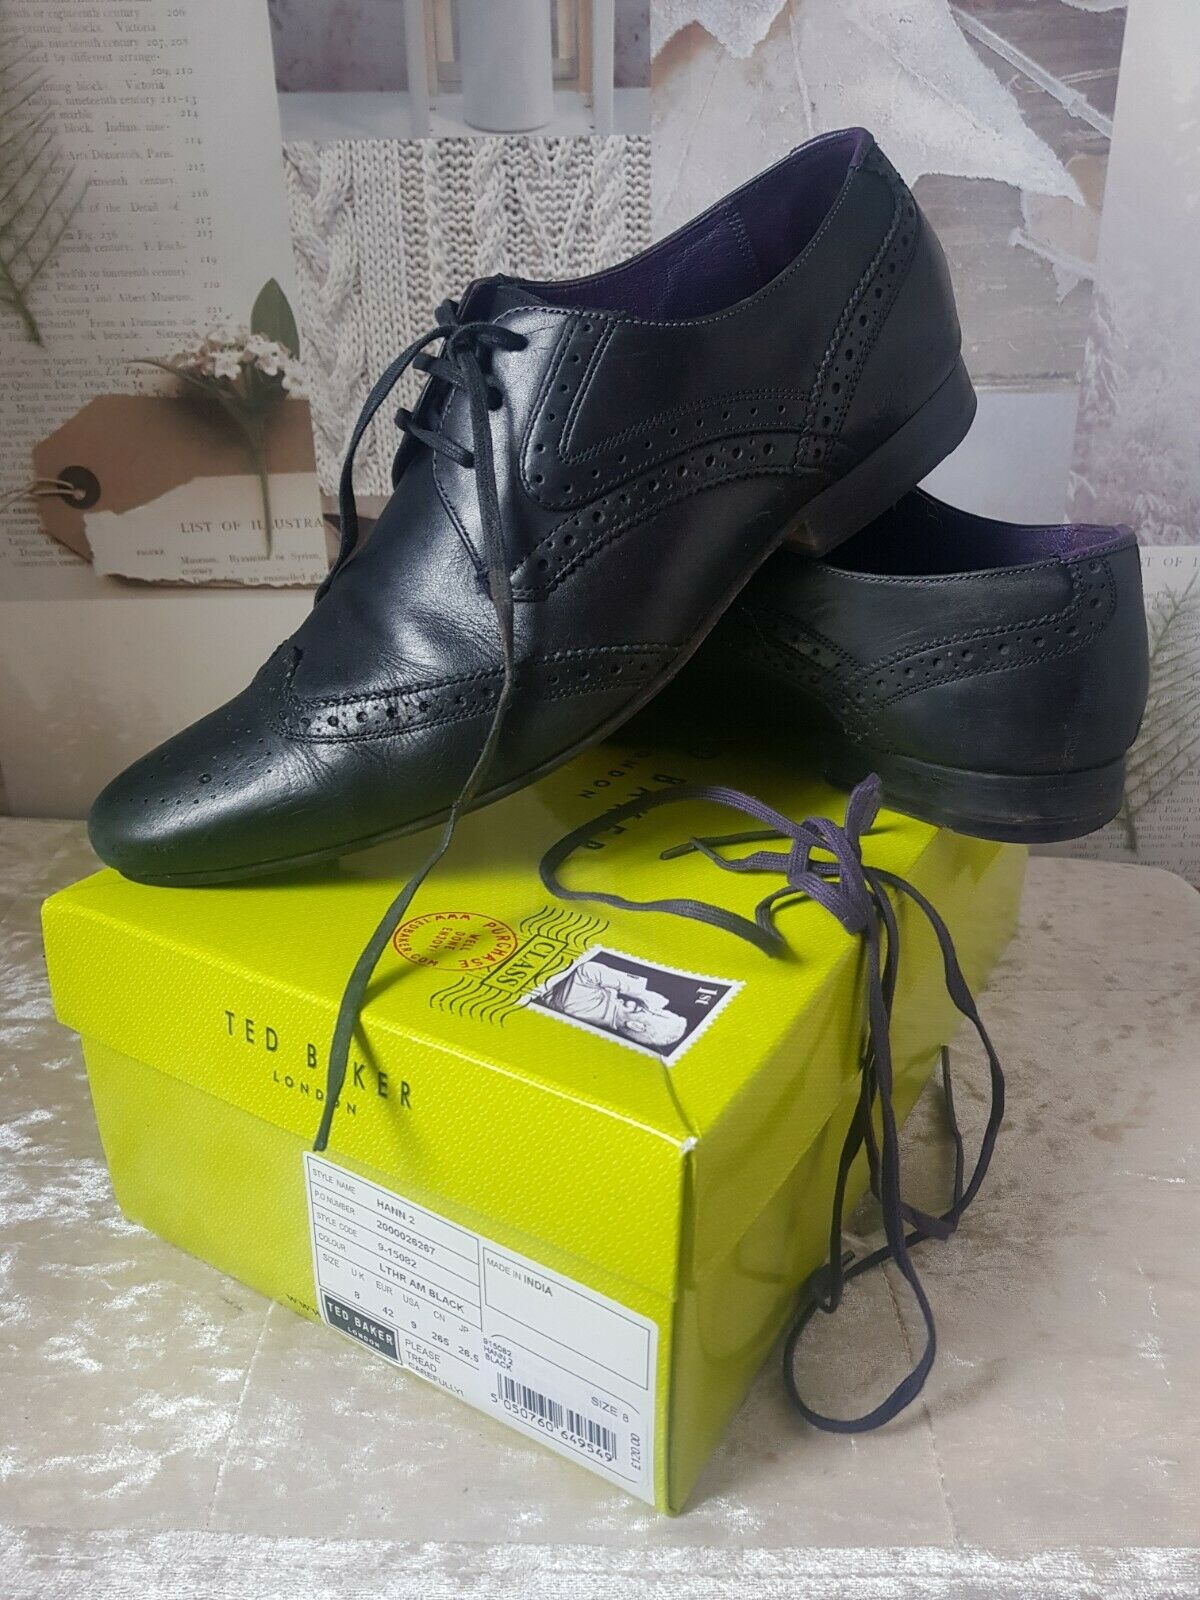 * Ted Baker Mens Hann 2 Derby Black Leather Brogue Shoes UK 8 EUR 42 USA 9 Boxed